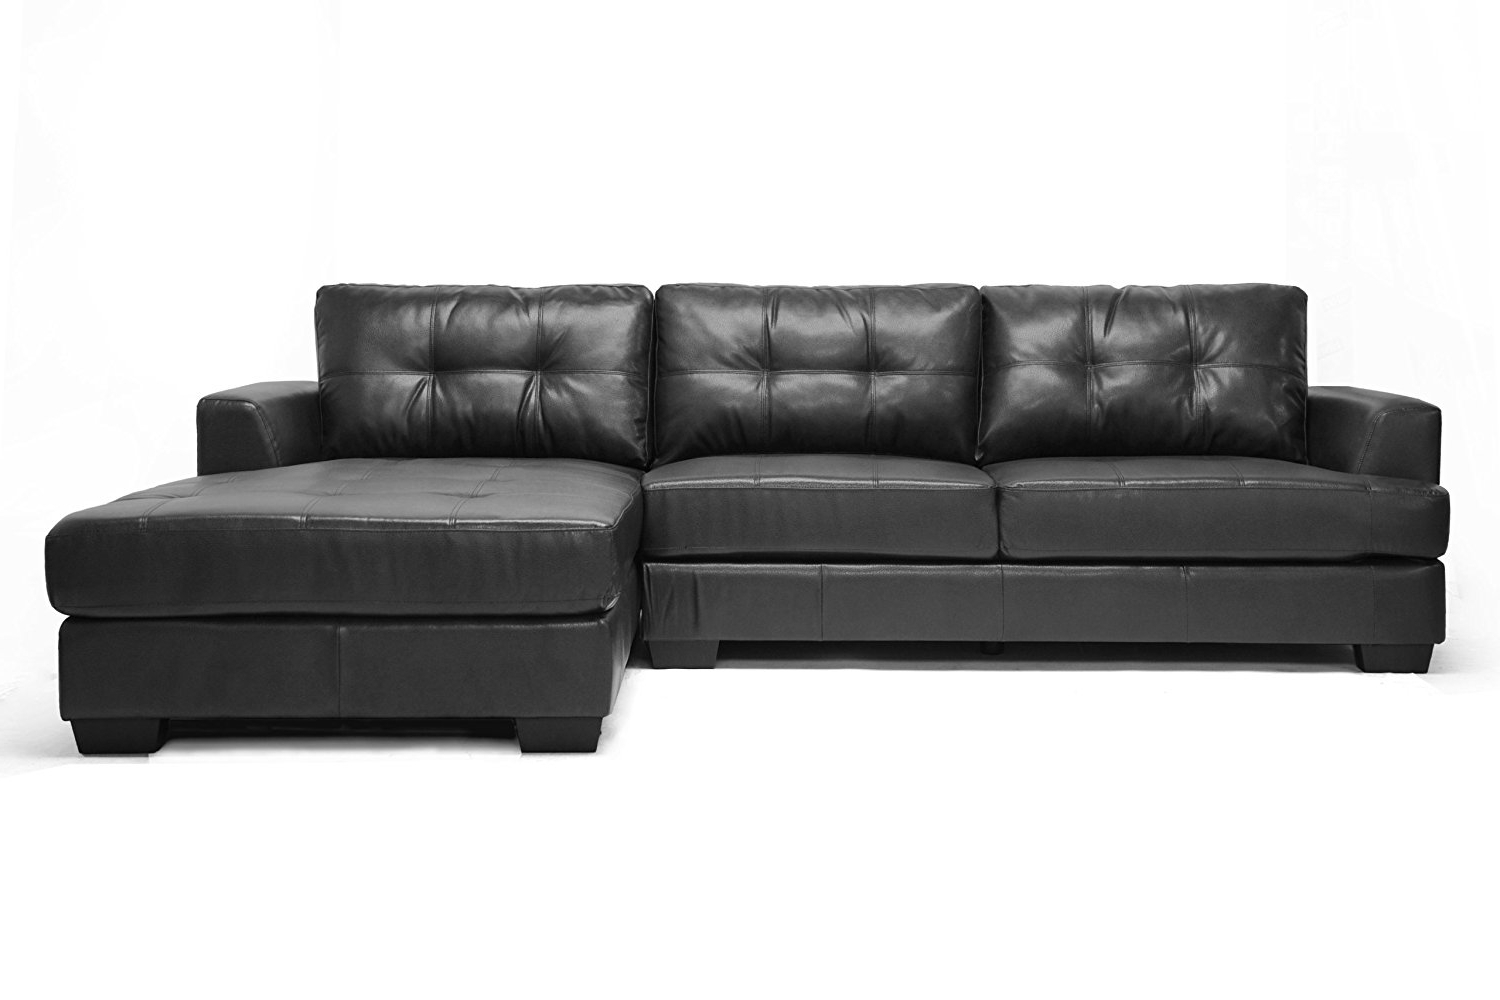 Amazon: Baxton Studio Dobson Leather Modern Sectional Sofa Within Widely Used Leather Sectional Chaises (View 9 of 15)